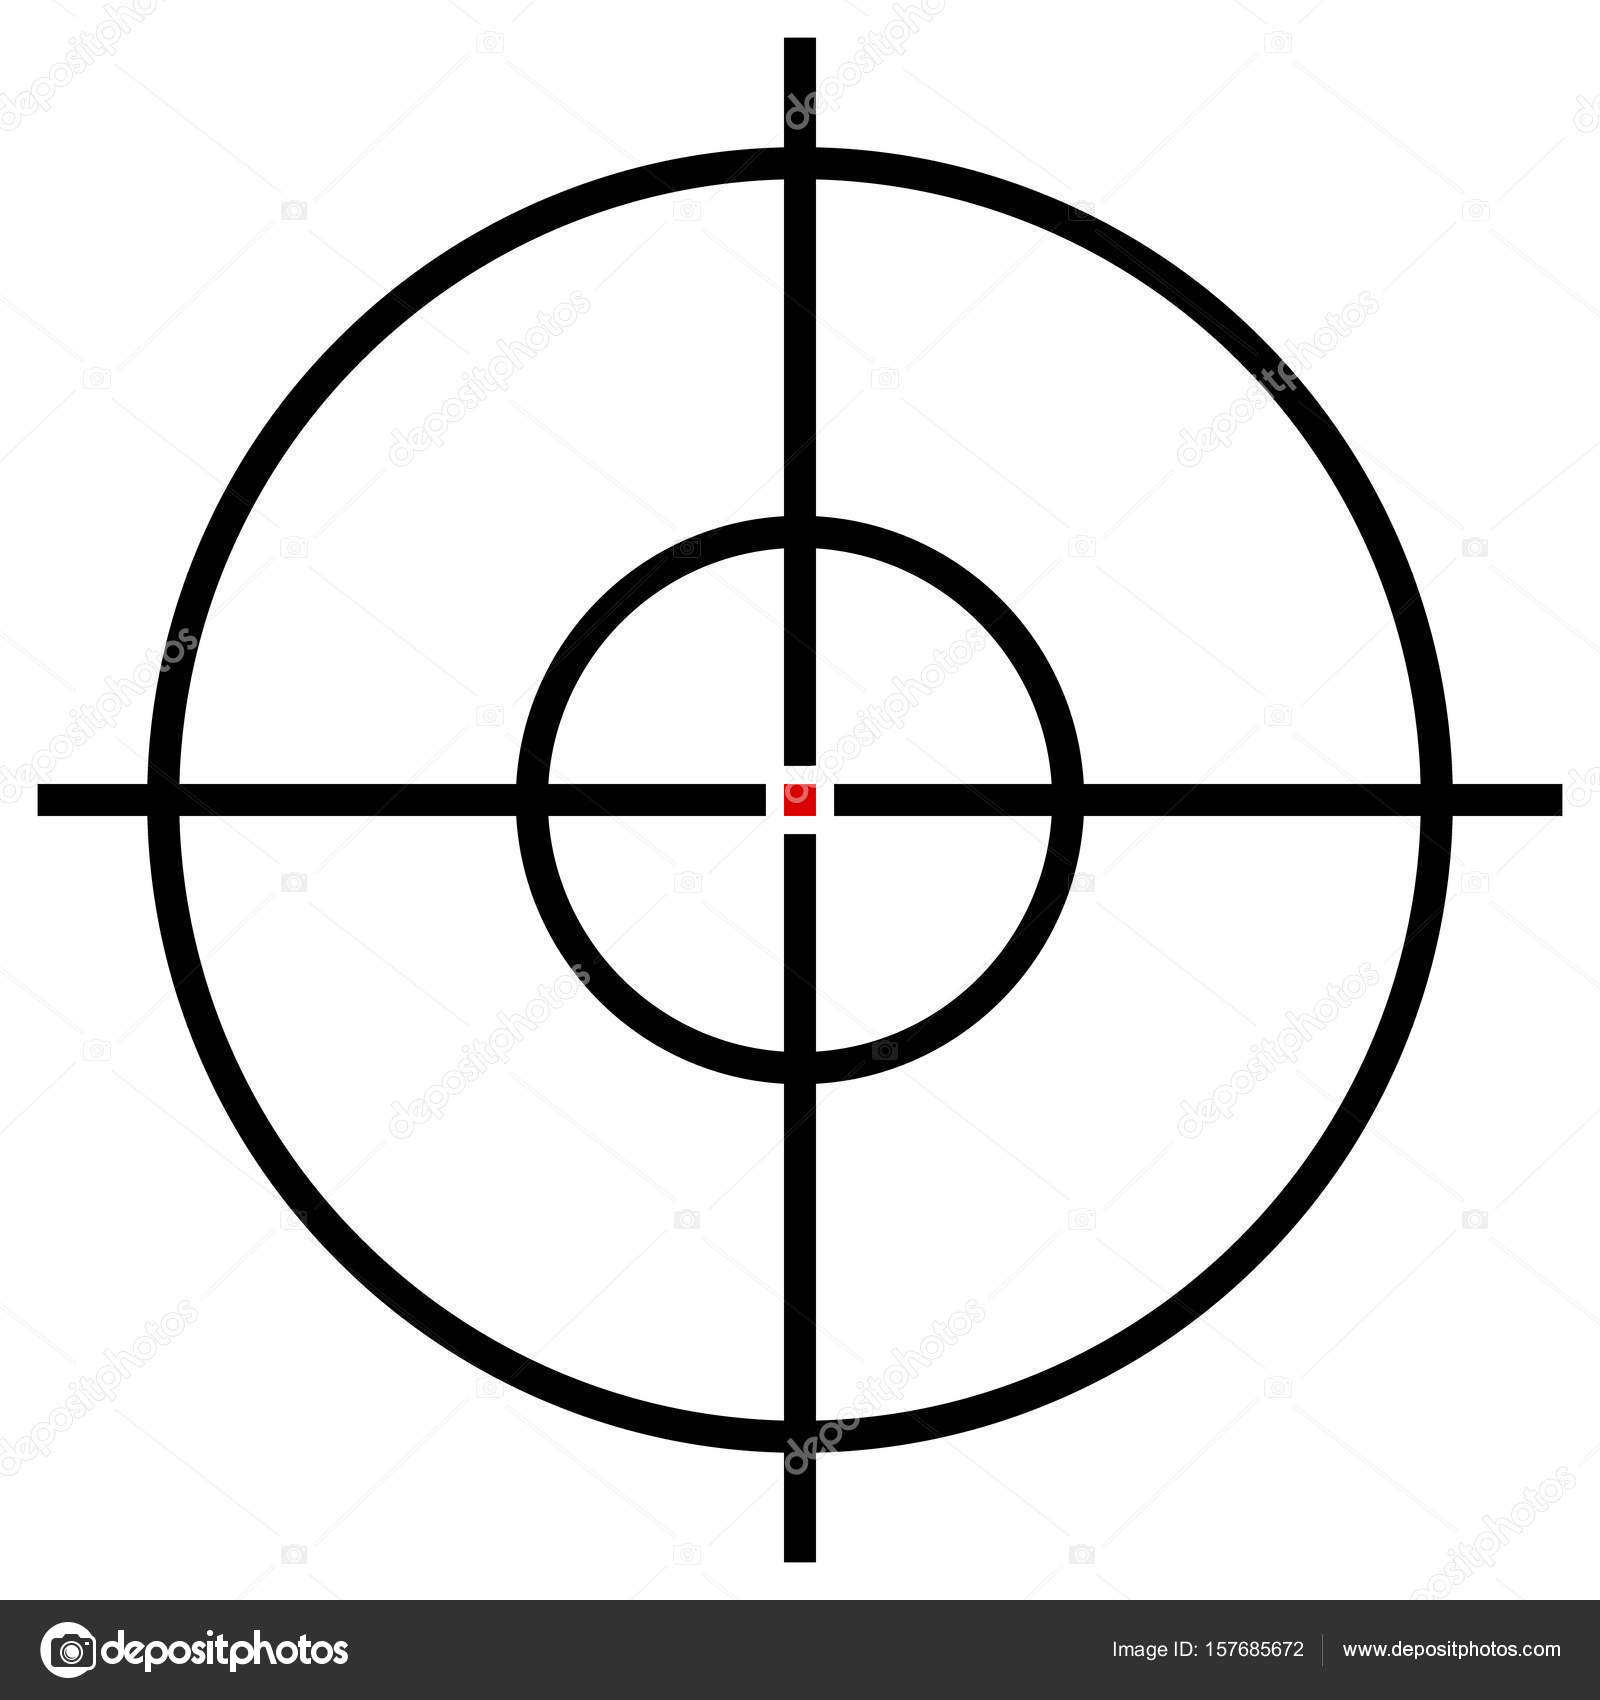 Target symbol isolated stock vector vectorguy 157685672 target symbol isolated stock vector buycottarizona Image collections